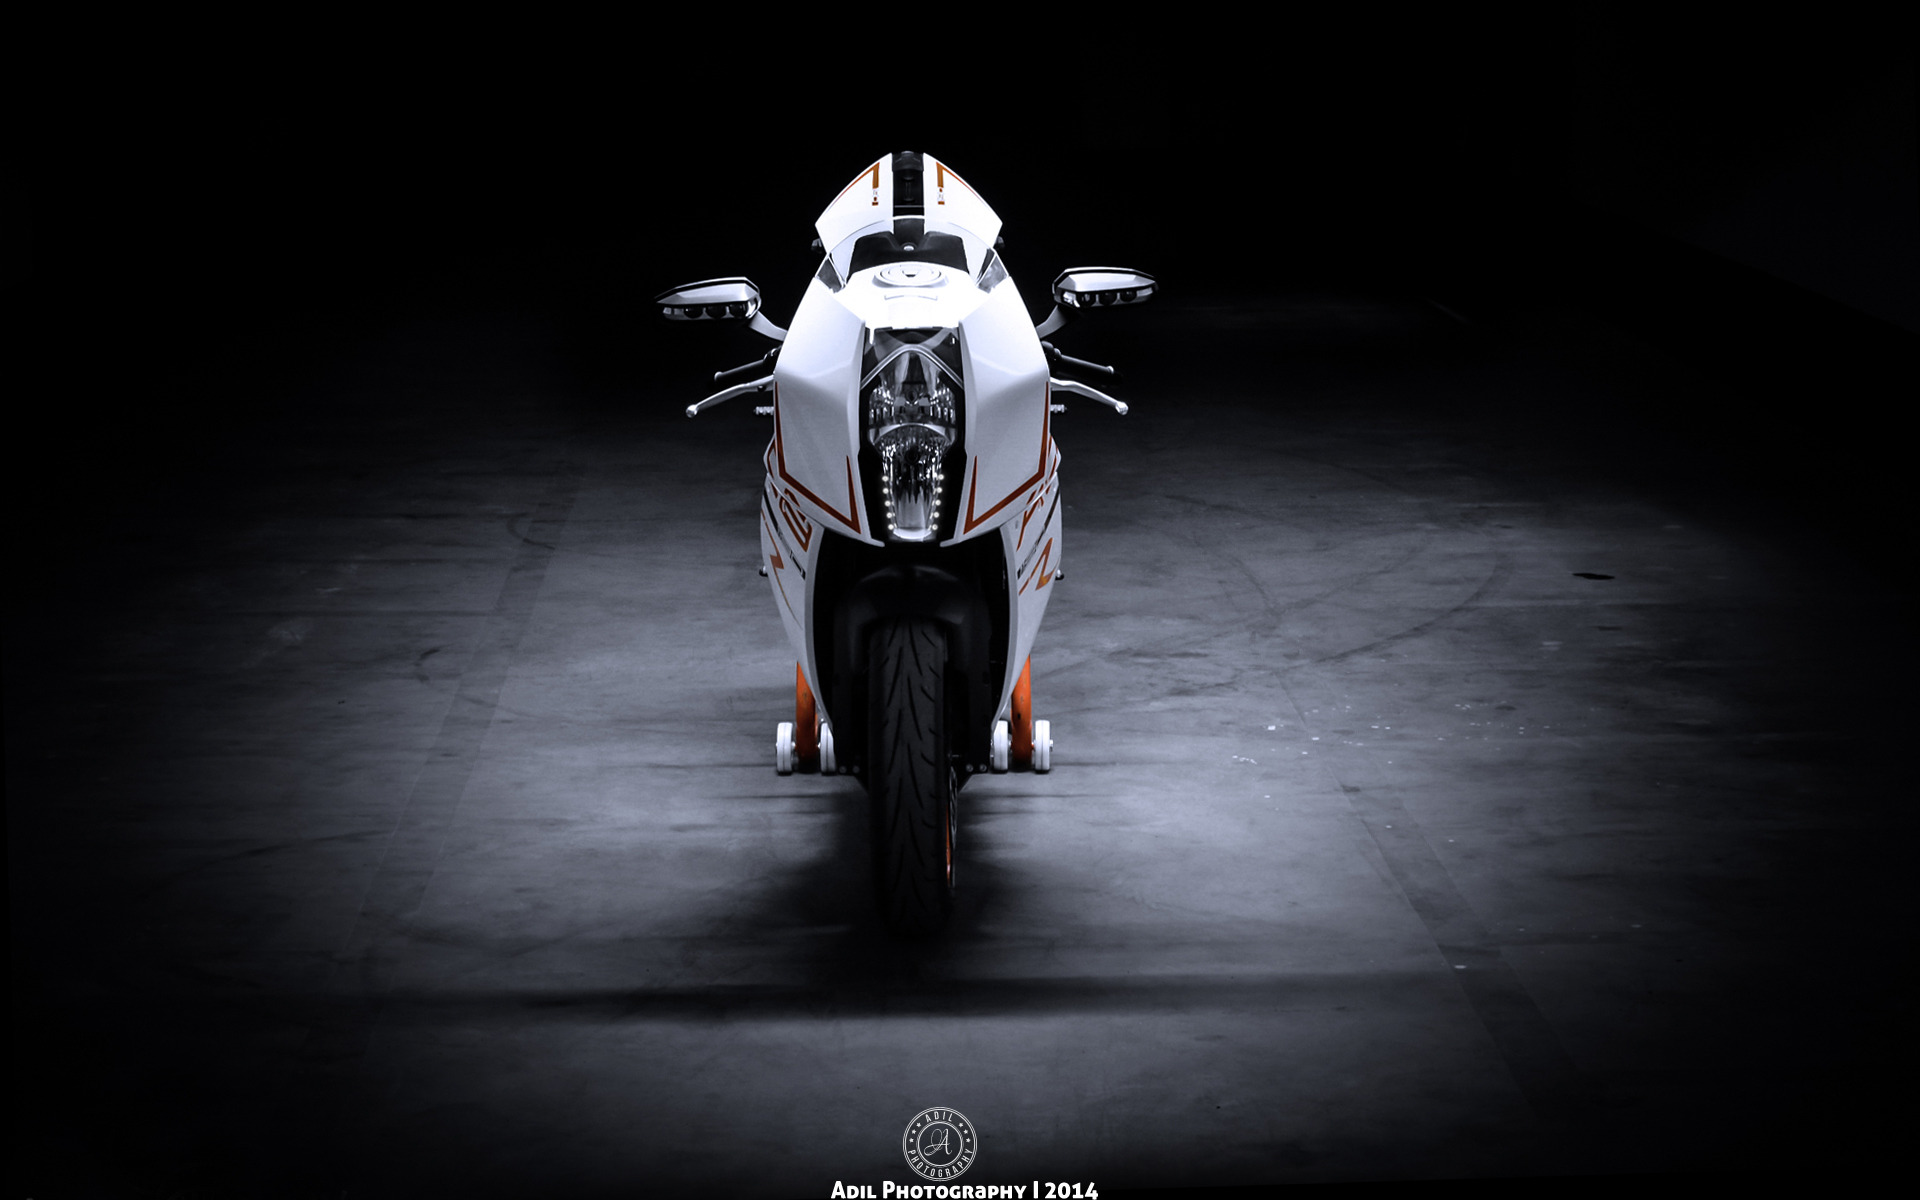 1920x1200 - KTM RC8 Wallpapers 18